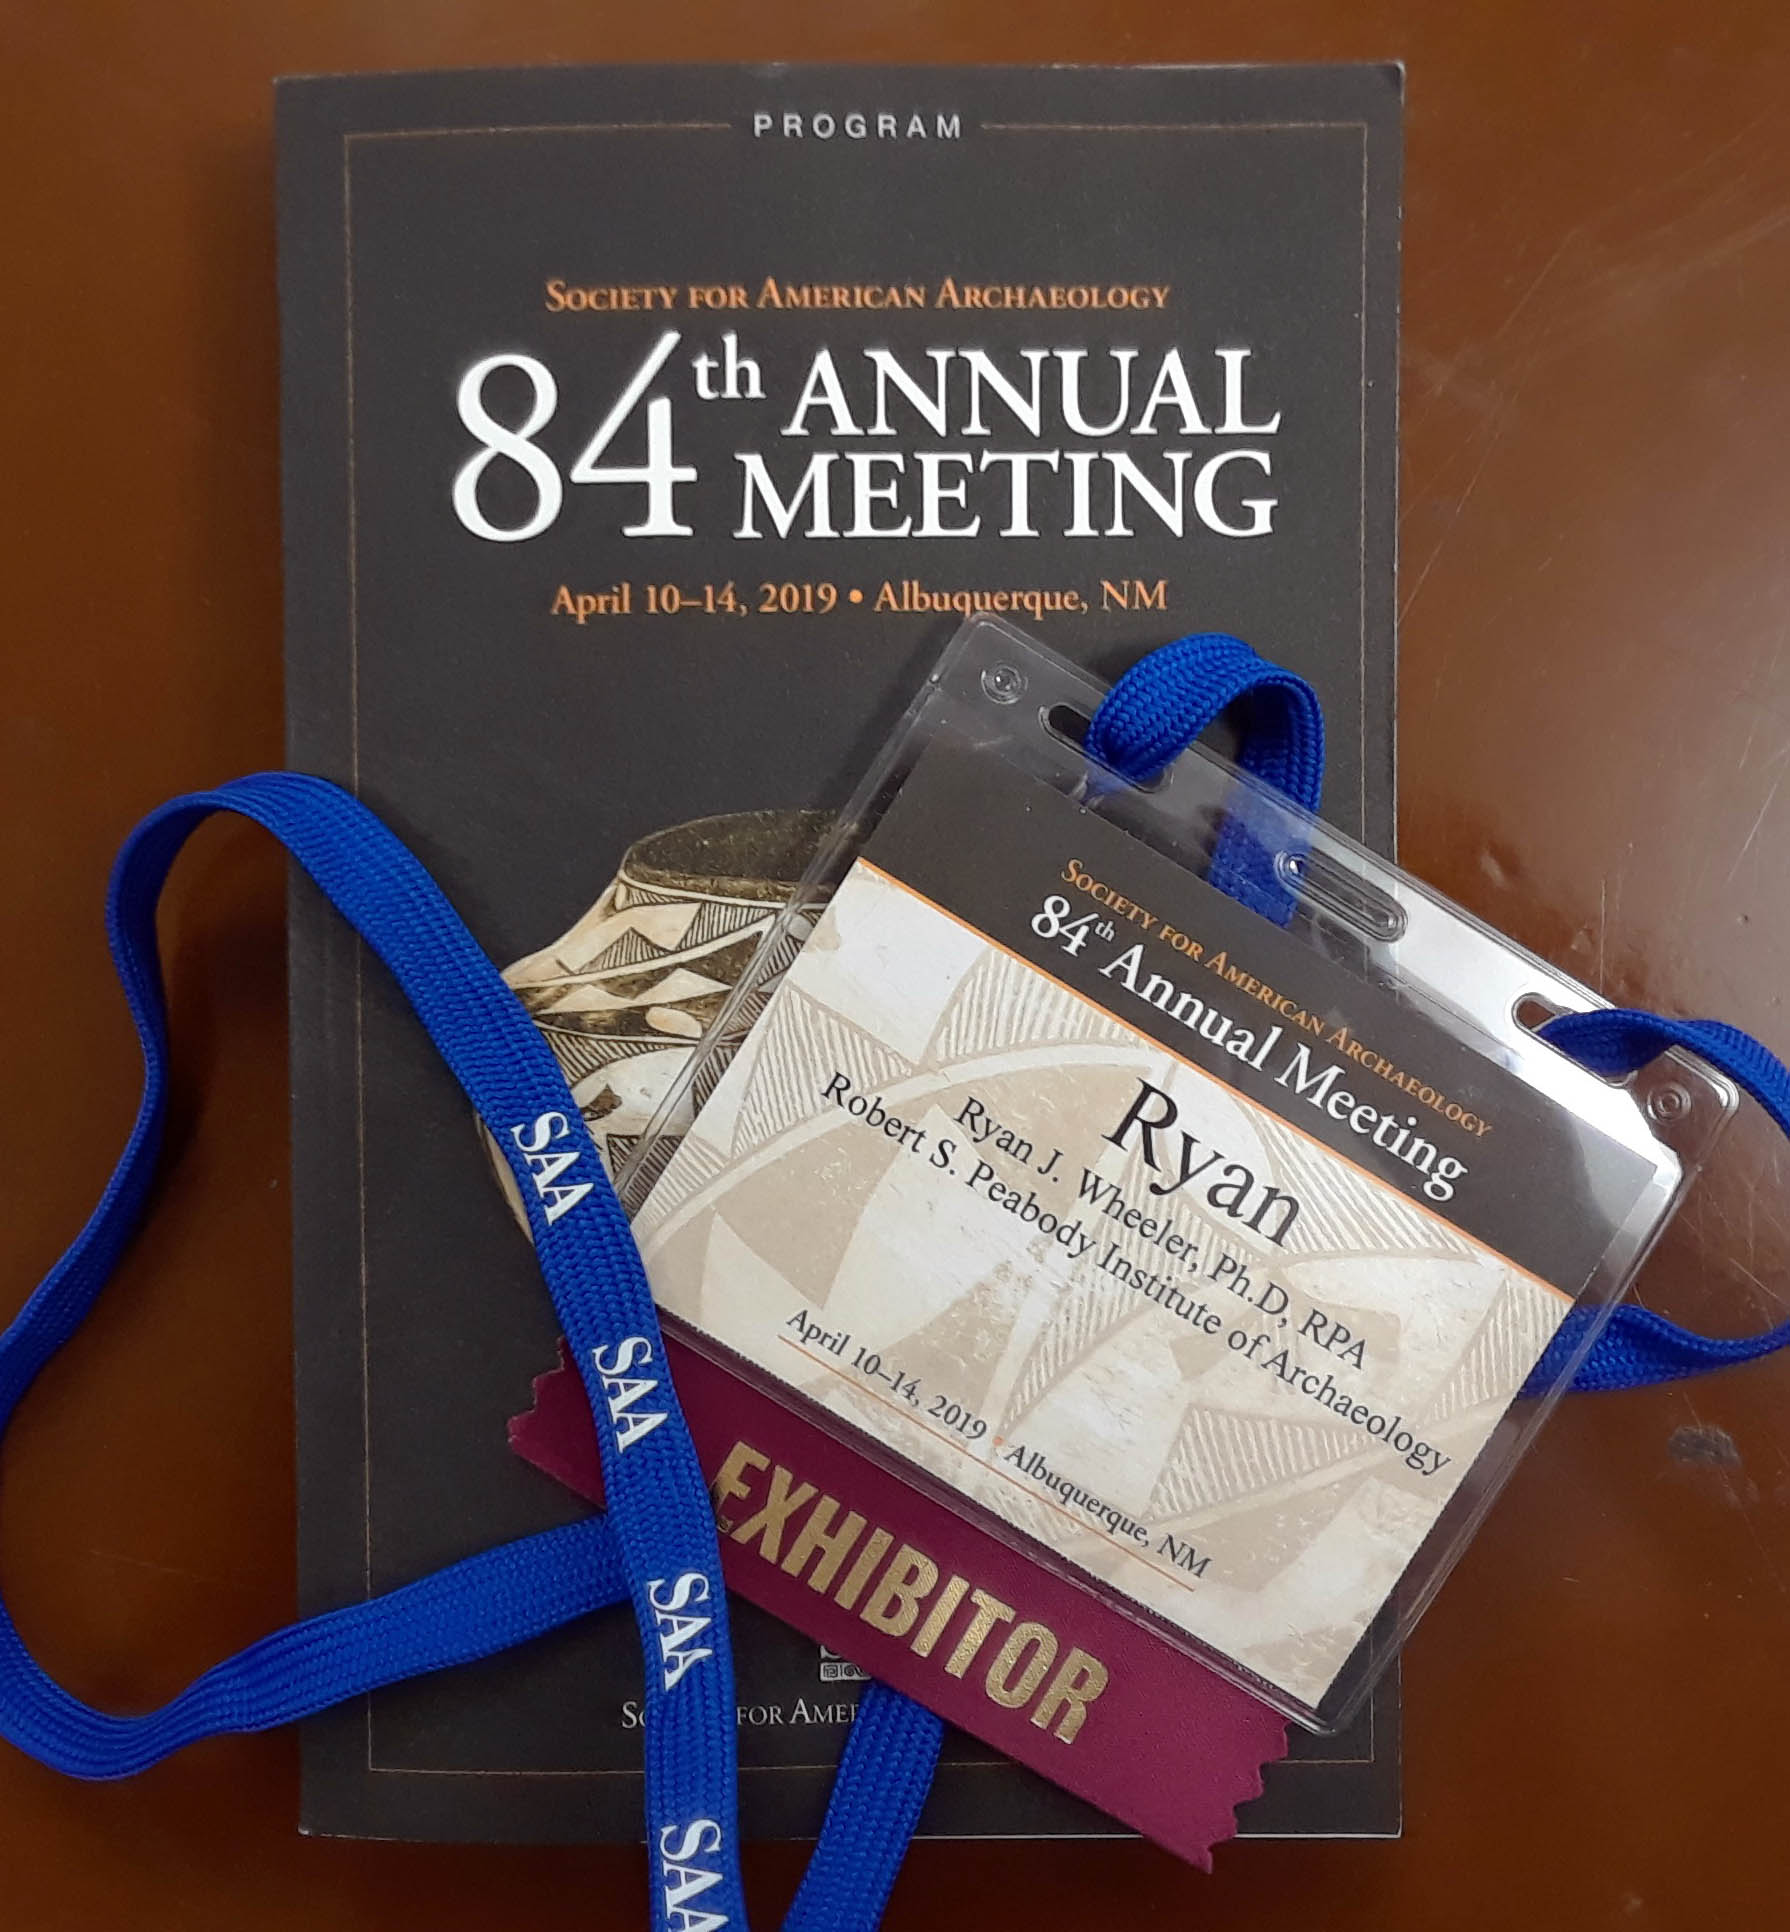 Image of name tag and program book from SAA conference.